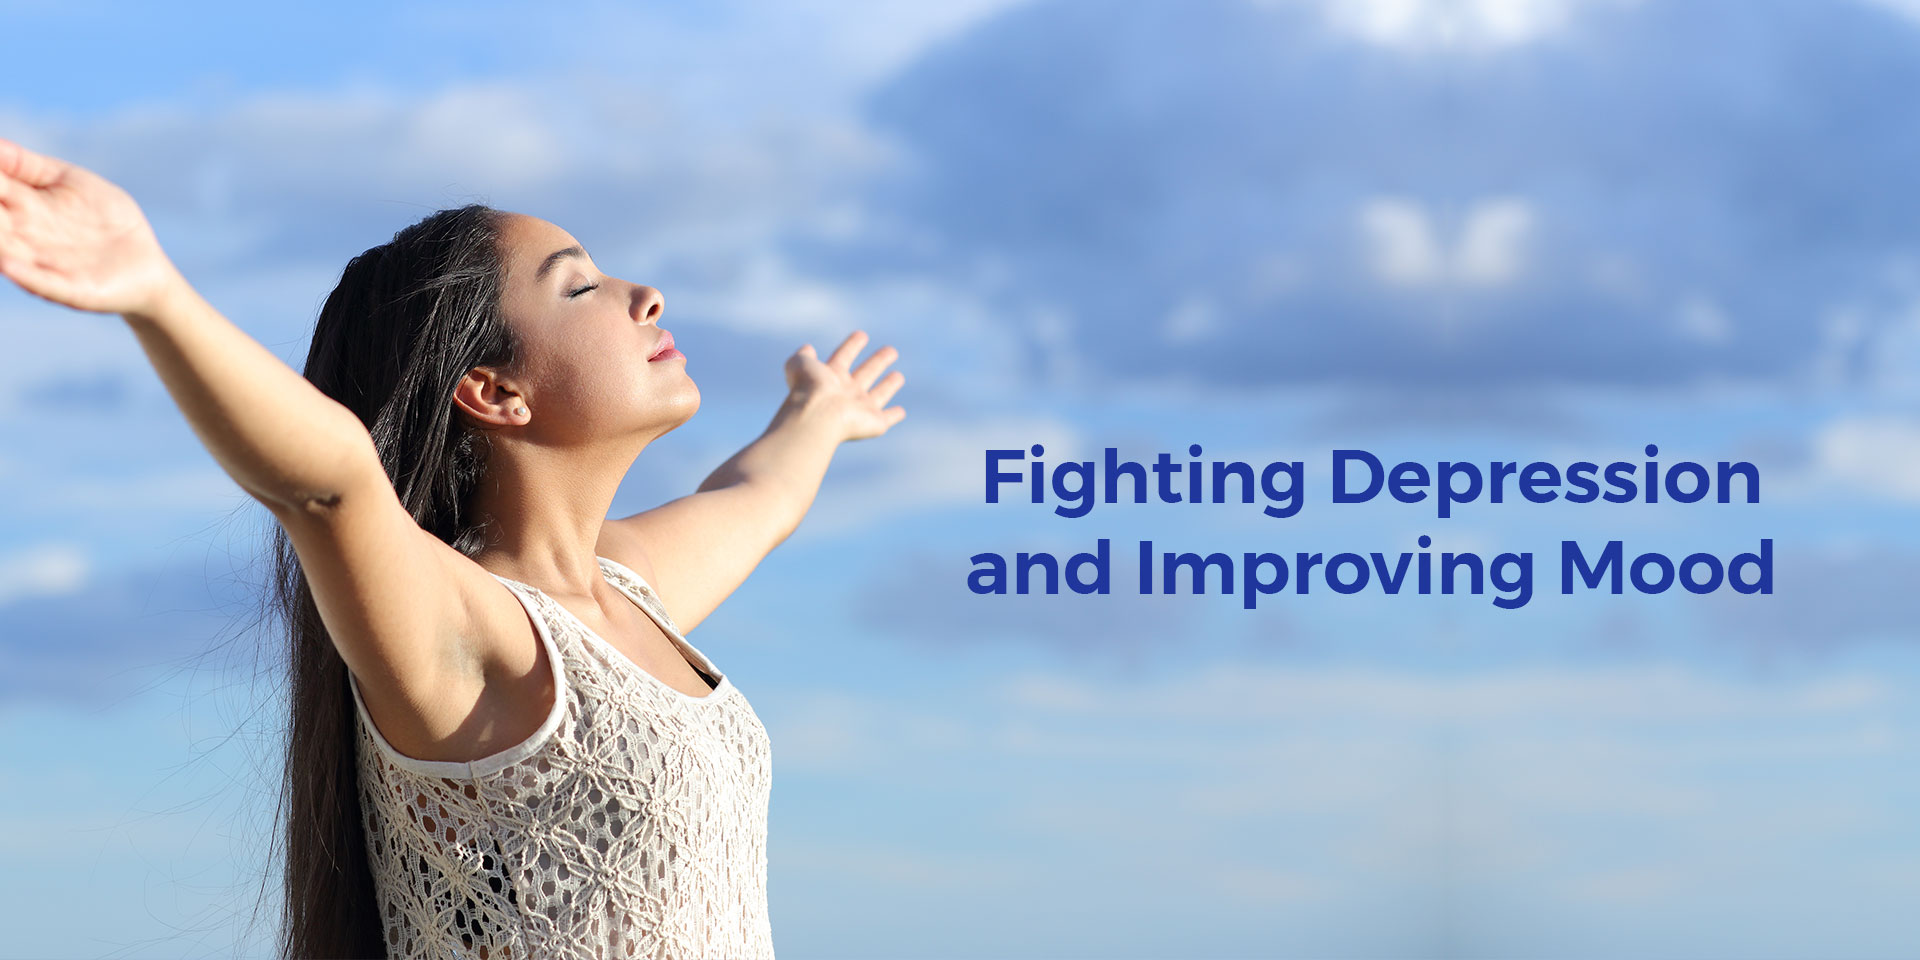 Fighting Depression and Improving Mood